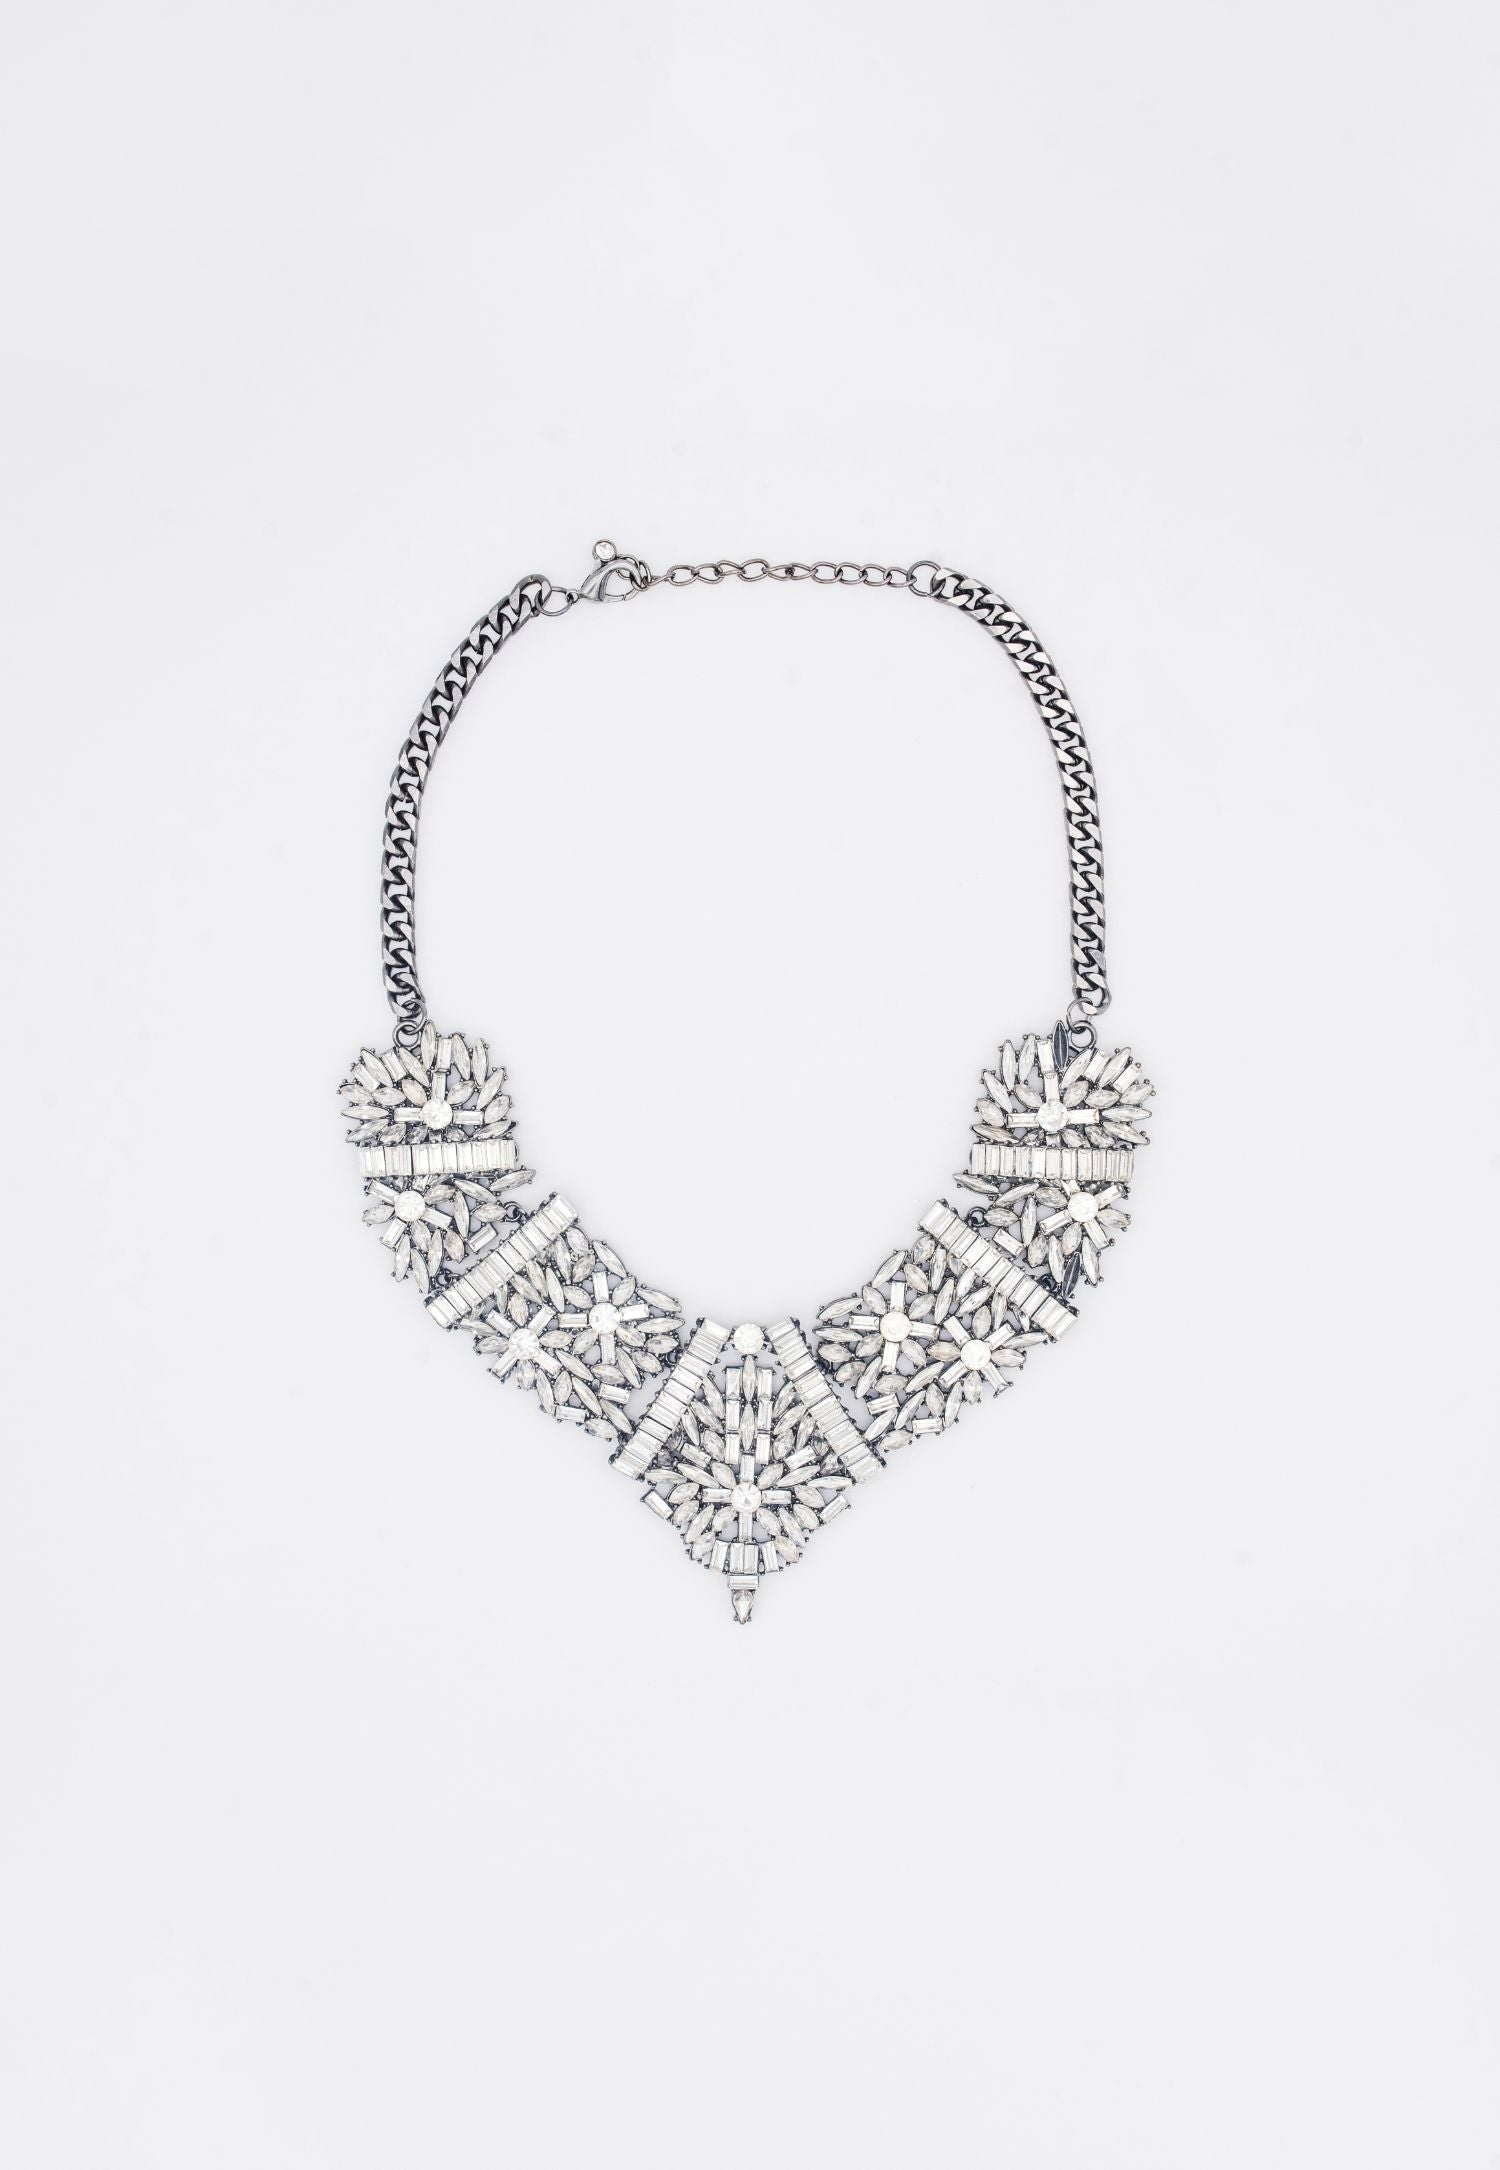 RHINESTONE BIB NECKLACE WITH ADJUSTABLE CHAIN LINK